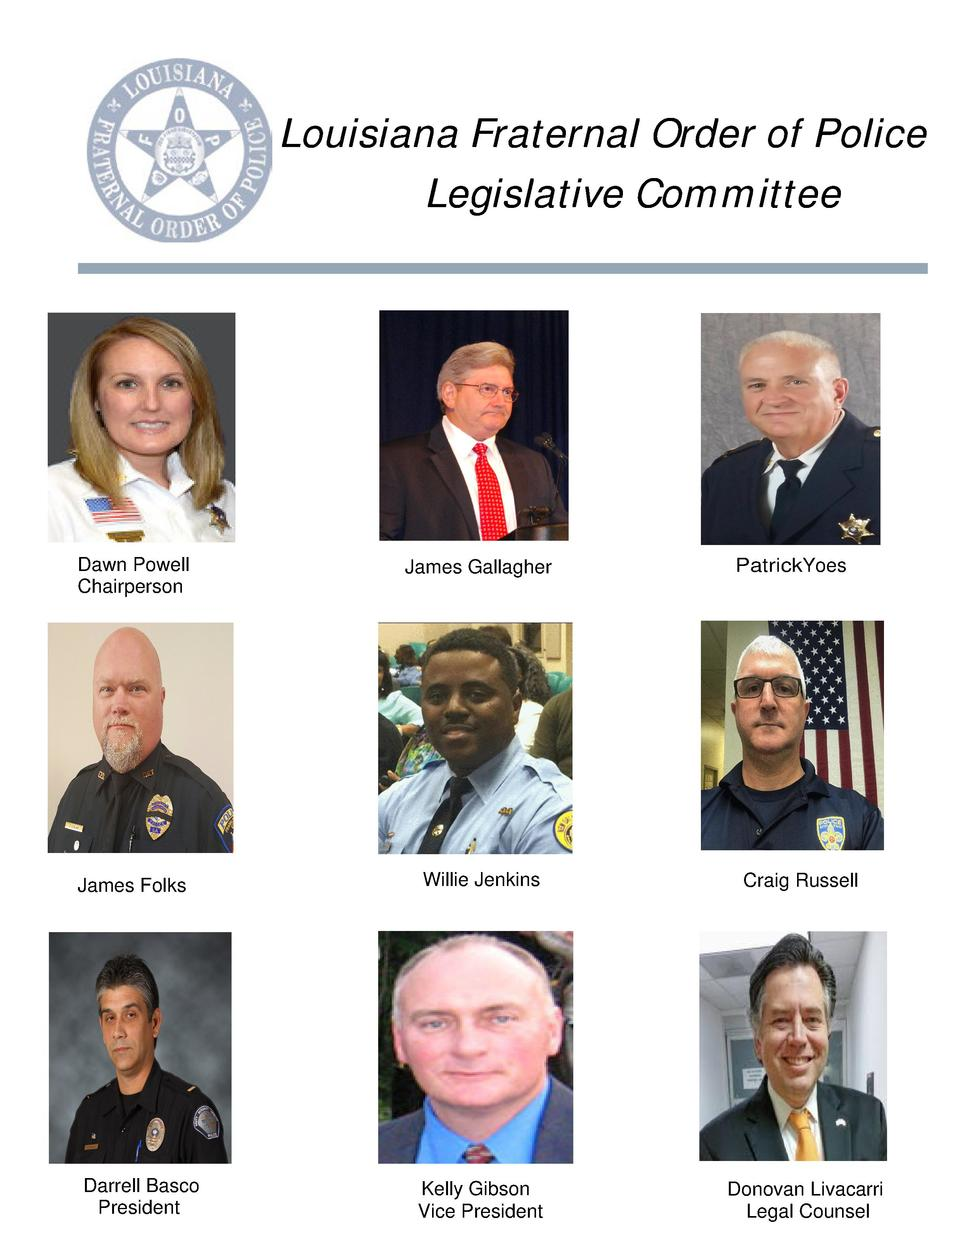 Louisiana Fraternal Order of Police Legislative Committee  Dawn Powell Chairperson  James Gallagher  James Folks  Willie J...